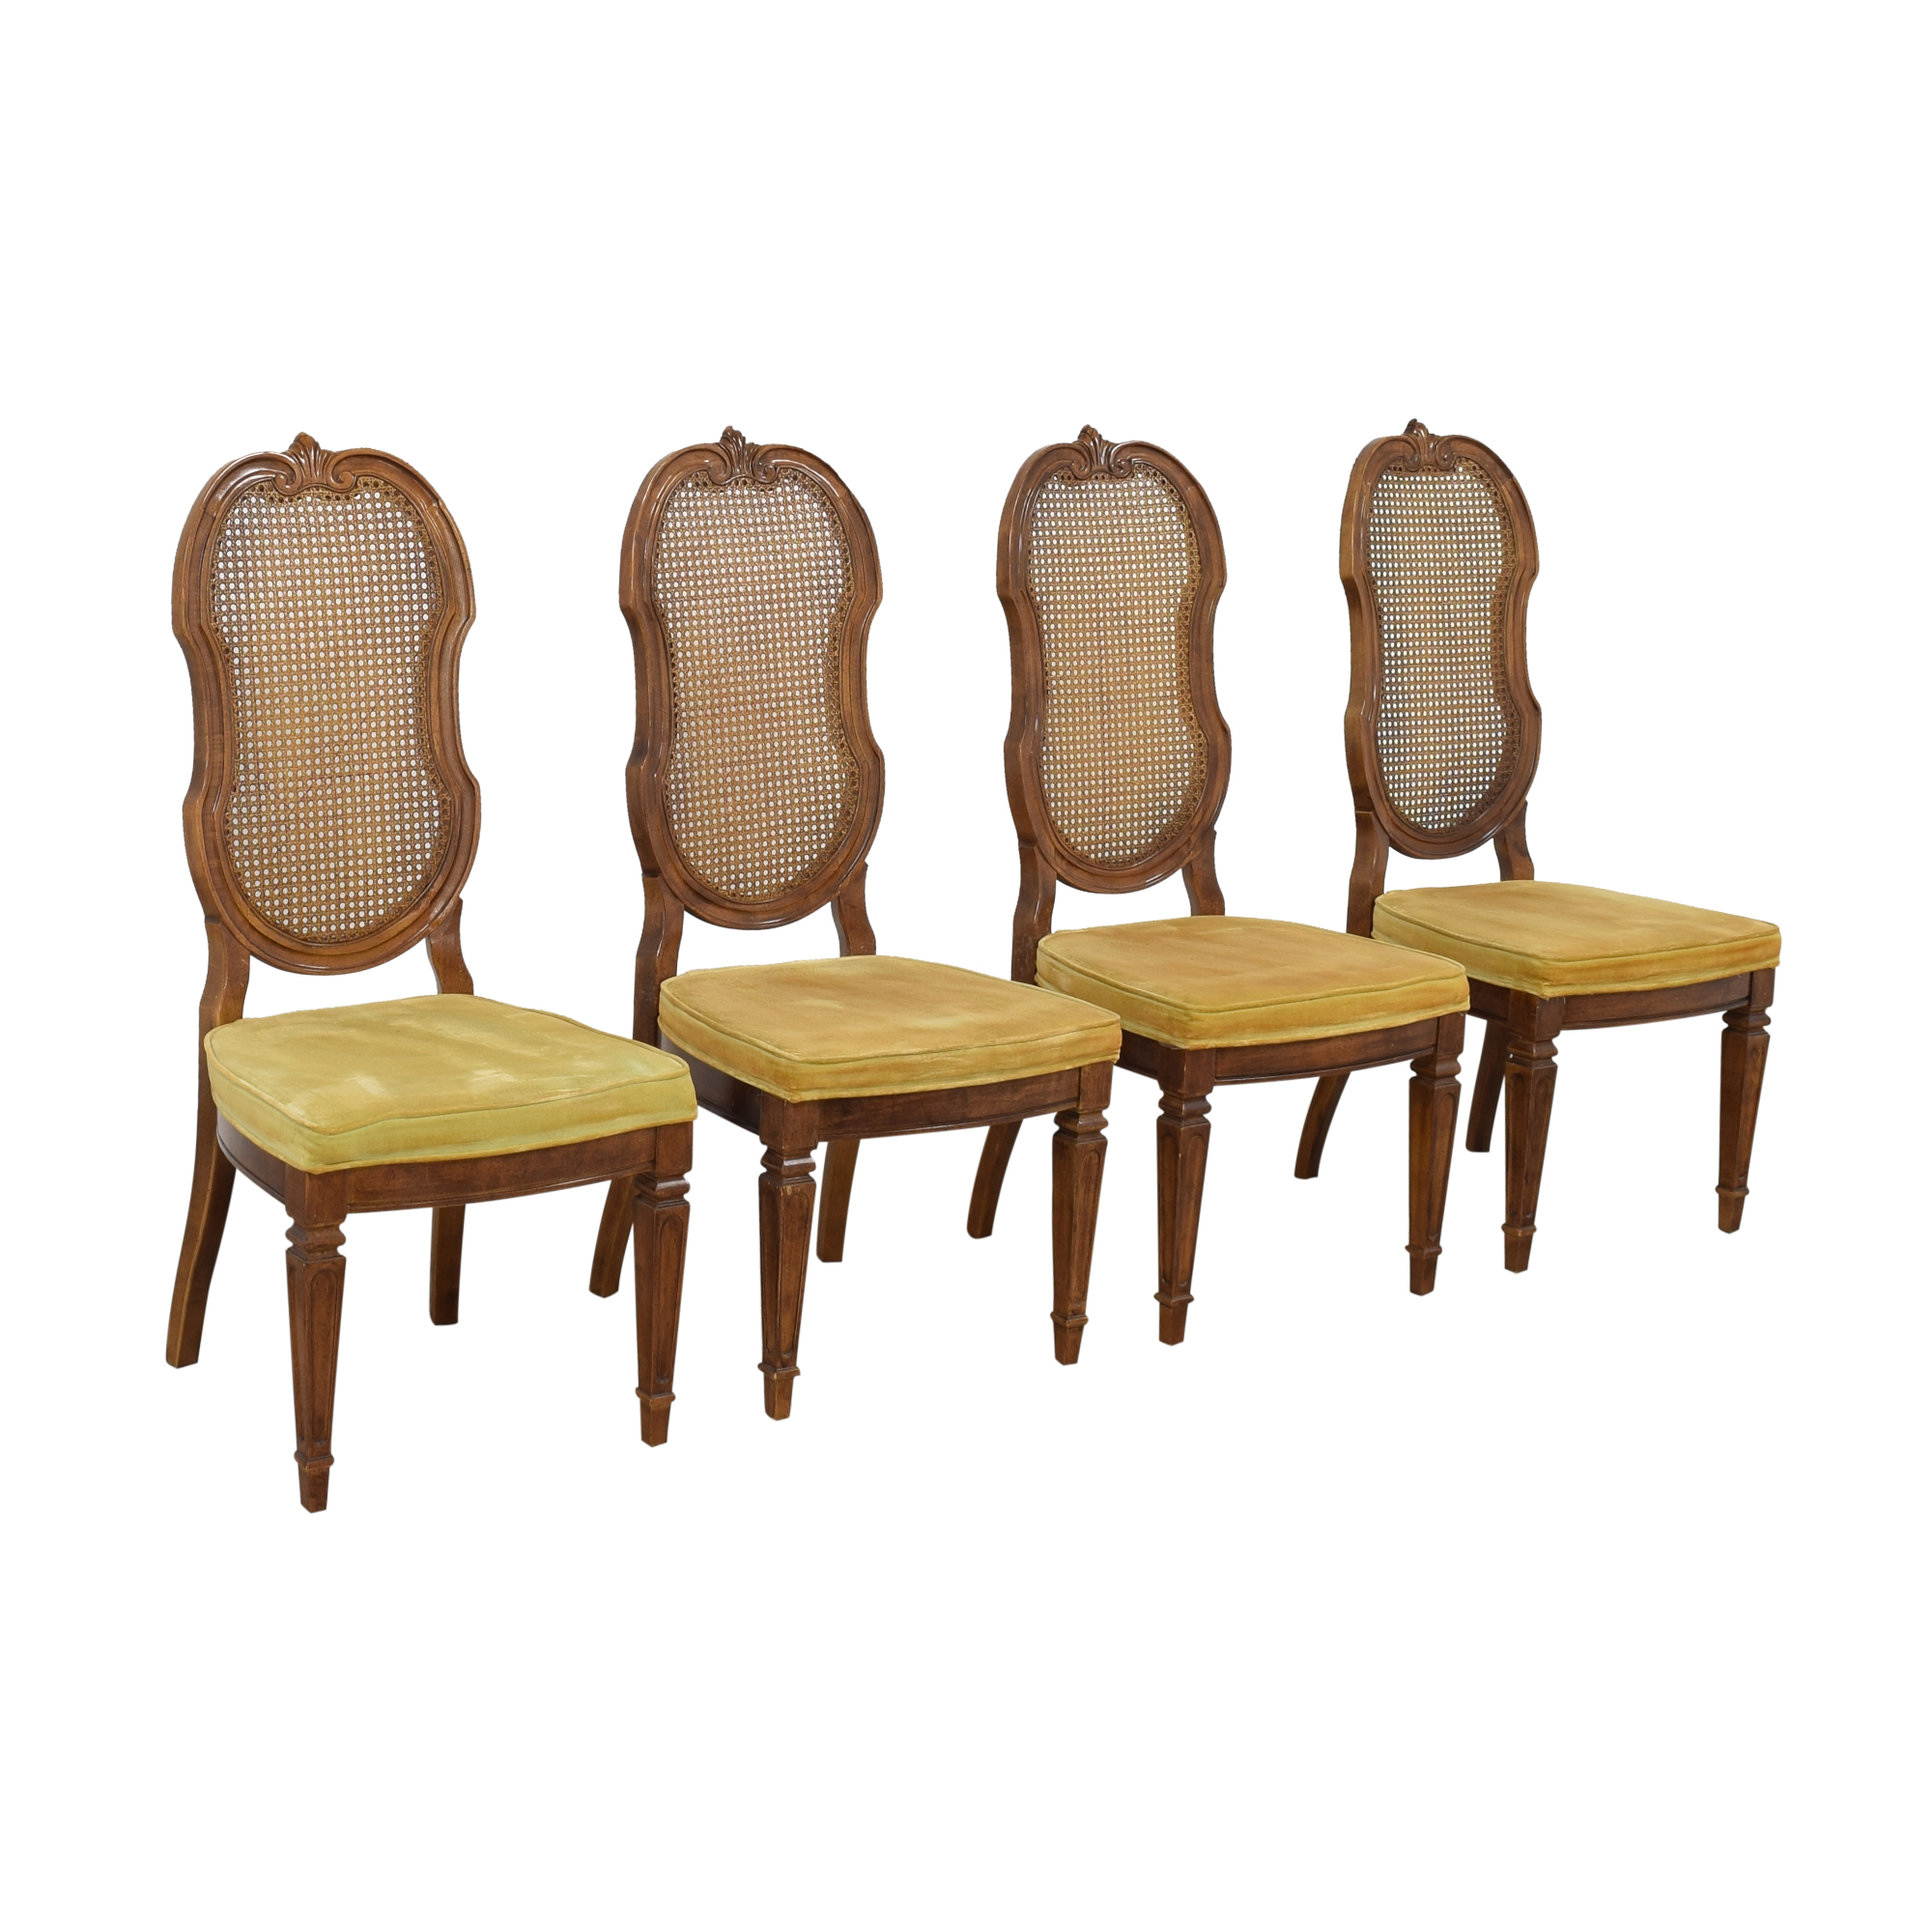 Thomasville Thomasville Italian Provincial Style Dining Chairs ma